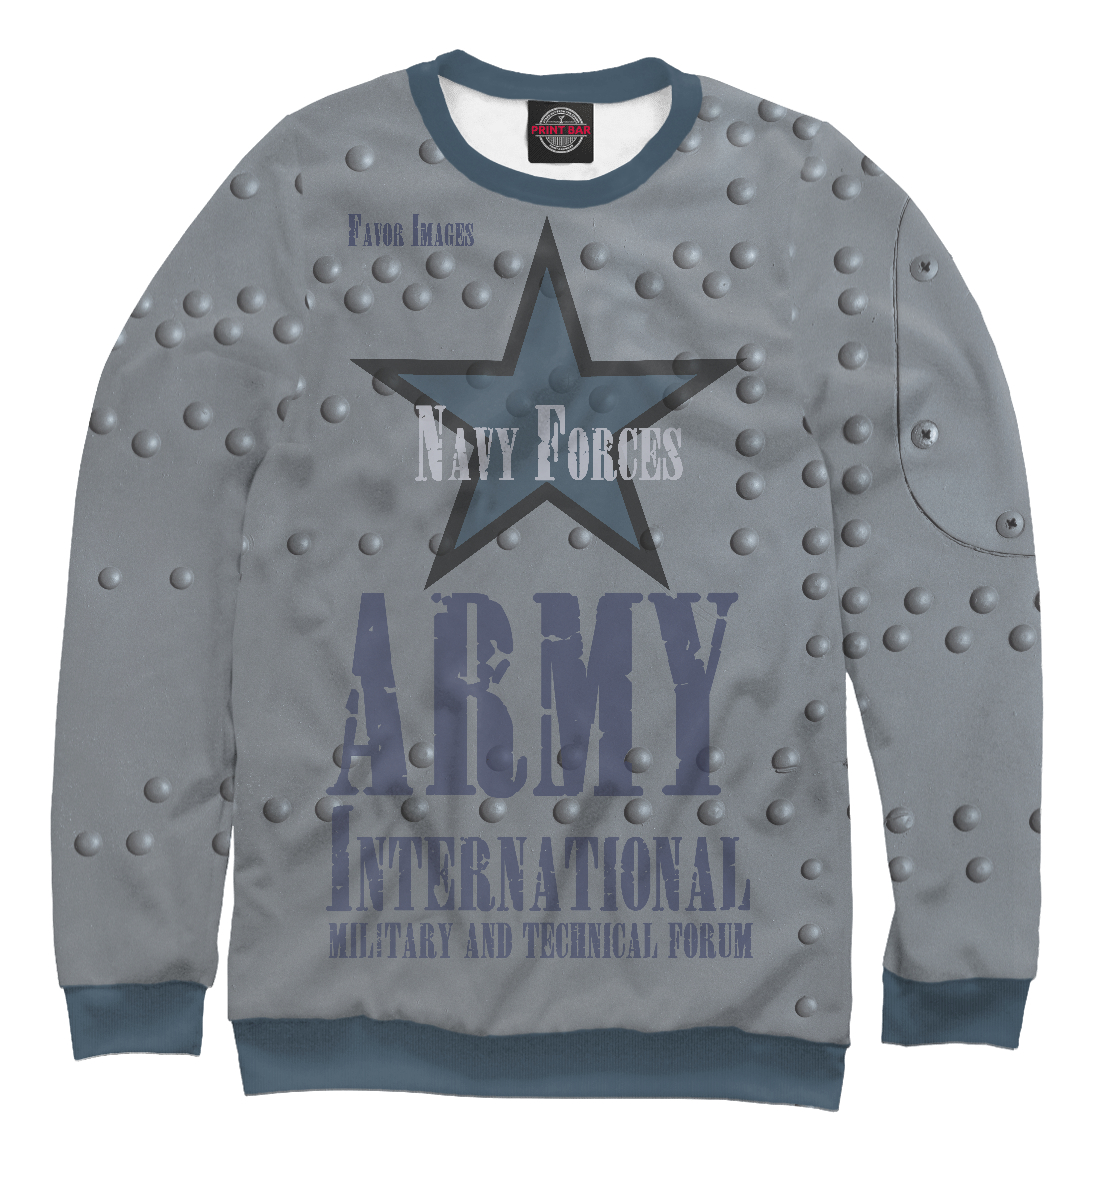 Forum Army. Navy forces forum